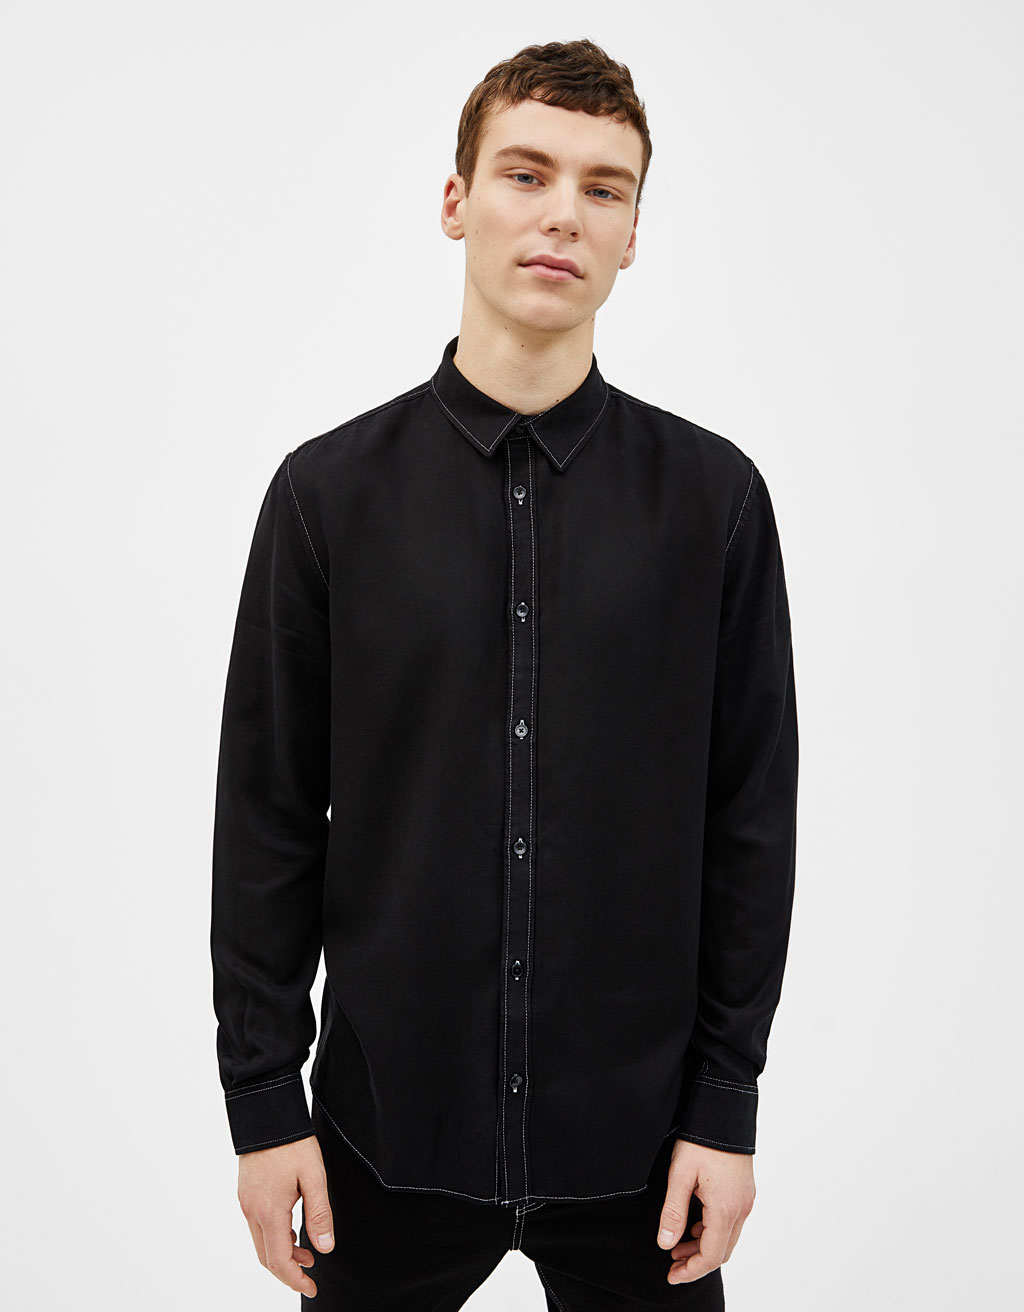 Tencel® shirt with contrast topstitching